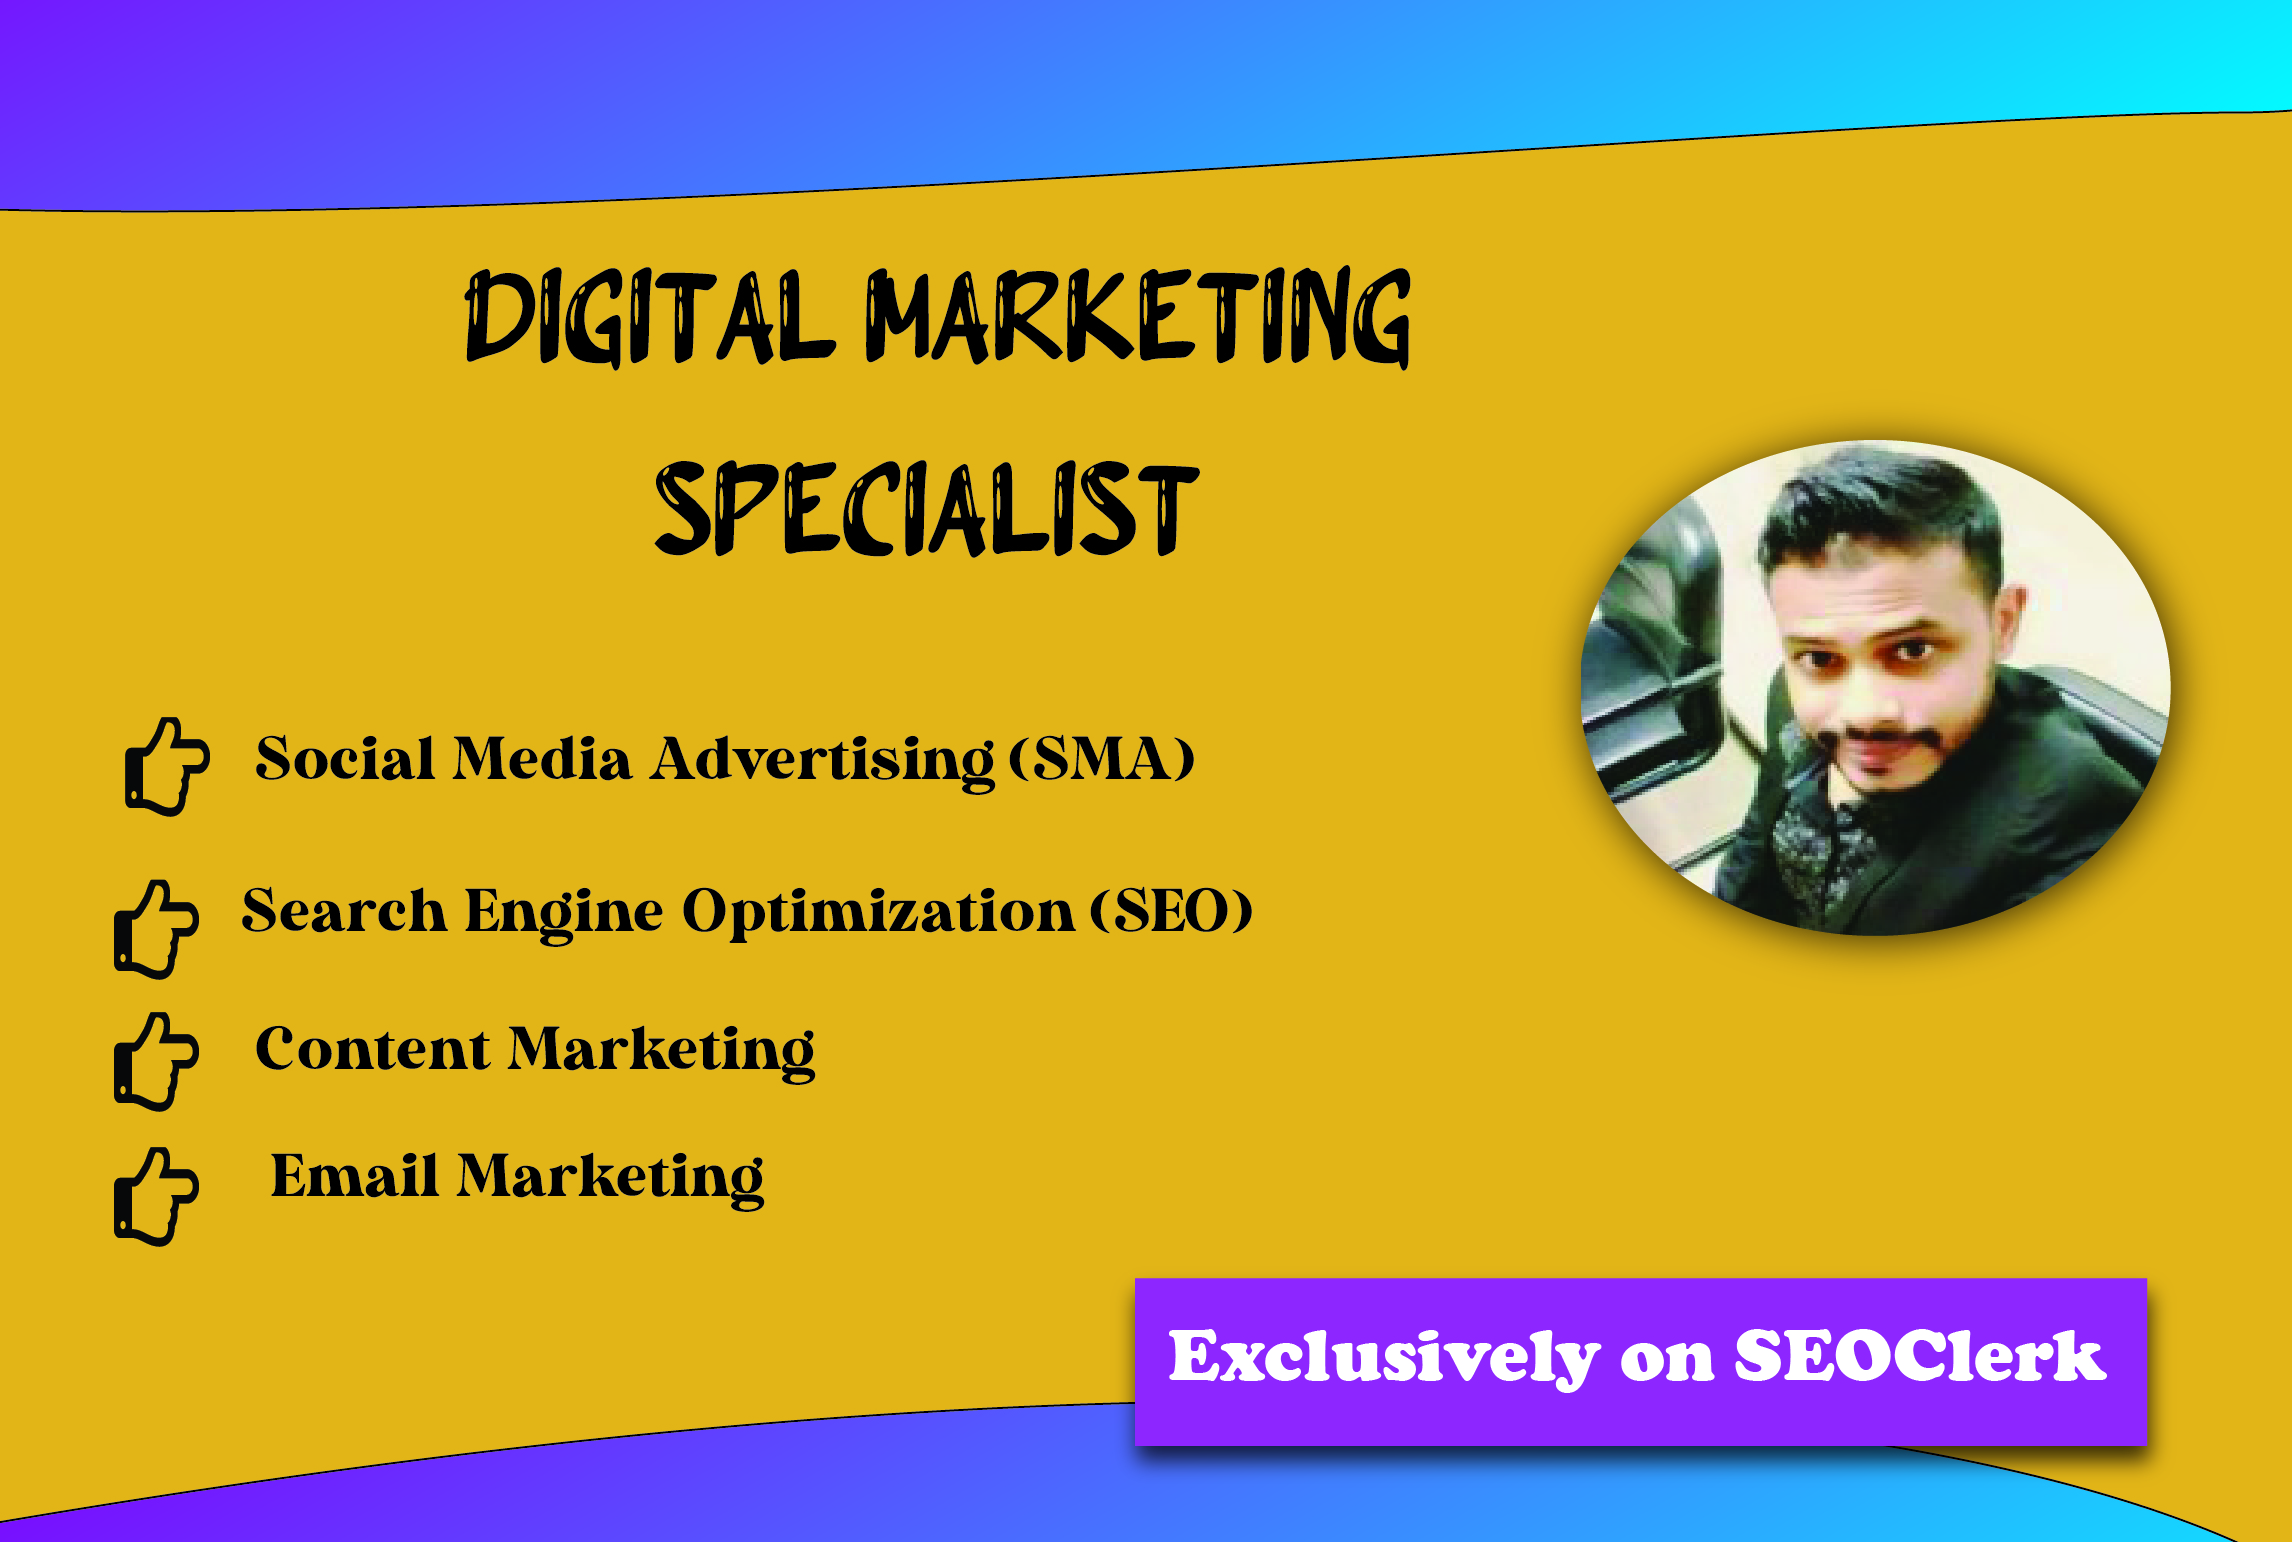 I Will Be Your Digital Marketer And Graphics Designer